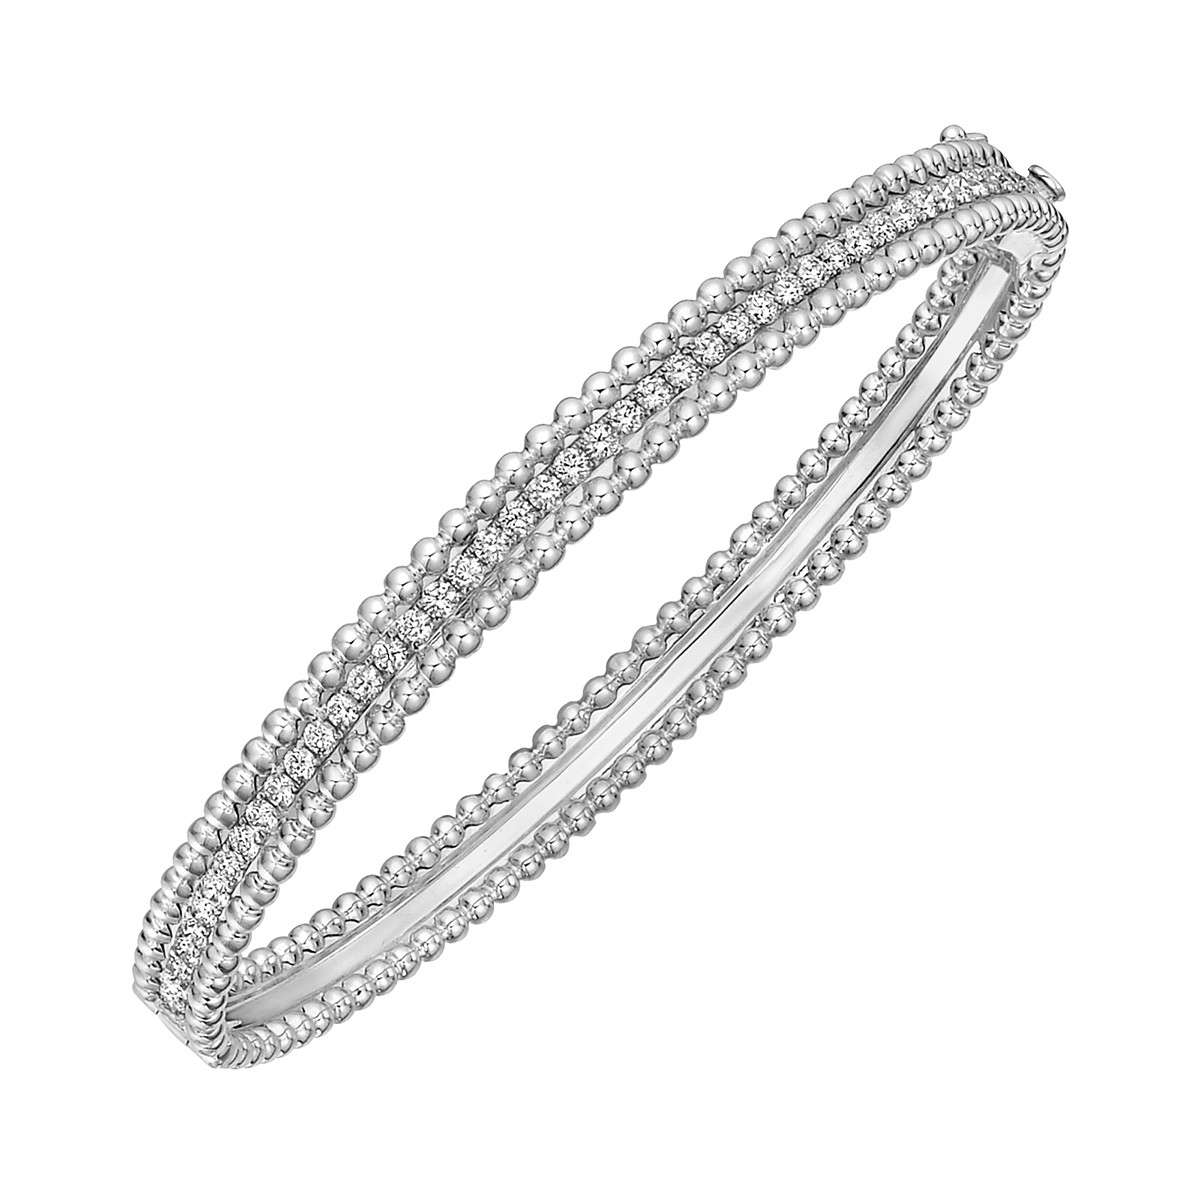 18k White Gold & Diamond Bead Border Bangle